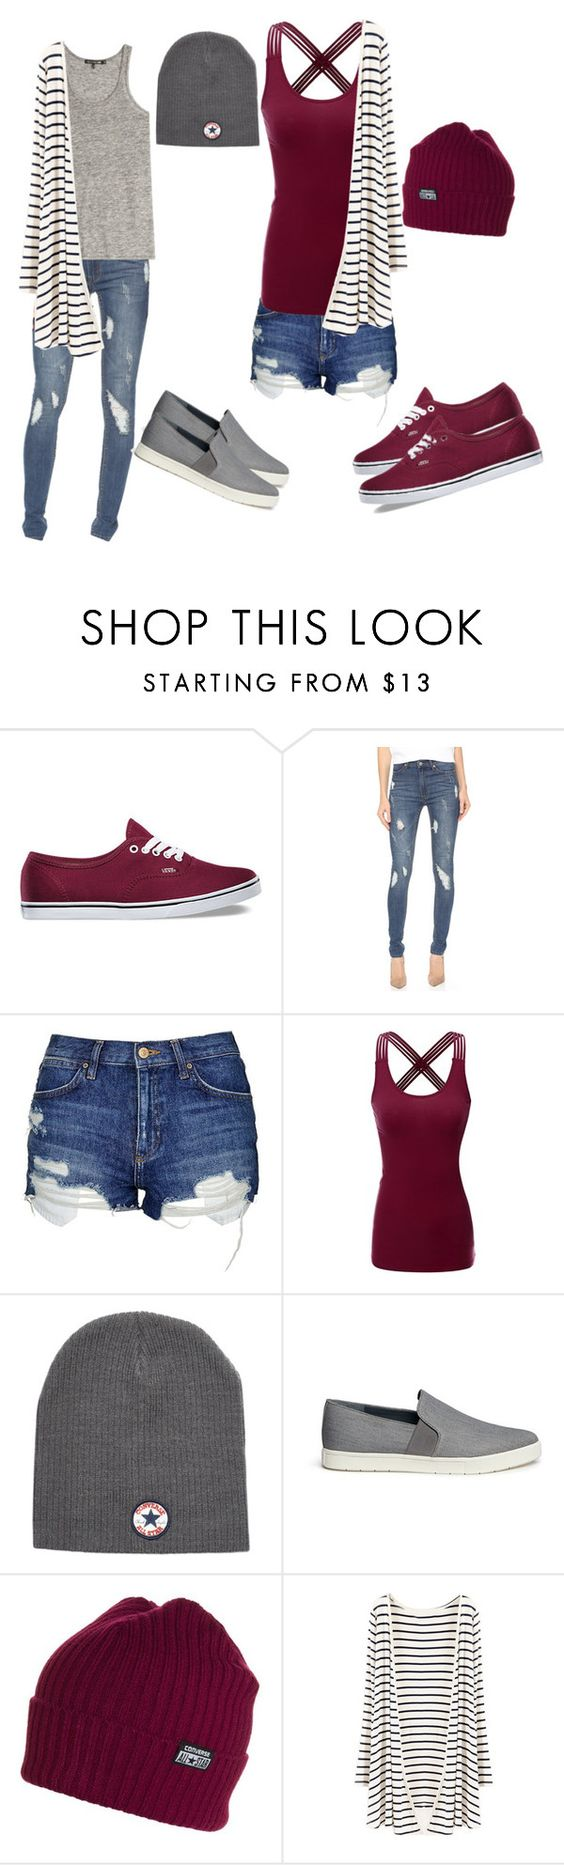 """Super Chill"" by wendy-bishop ❤ liked on Polyvore featuring мода, Vans, Cheap Monday, Topshop, Doublju, Converse, Vince и rag & bone"